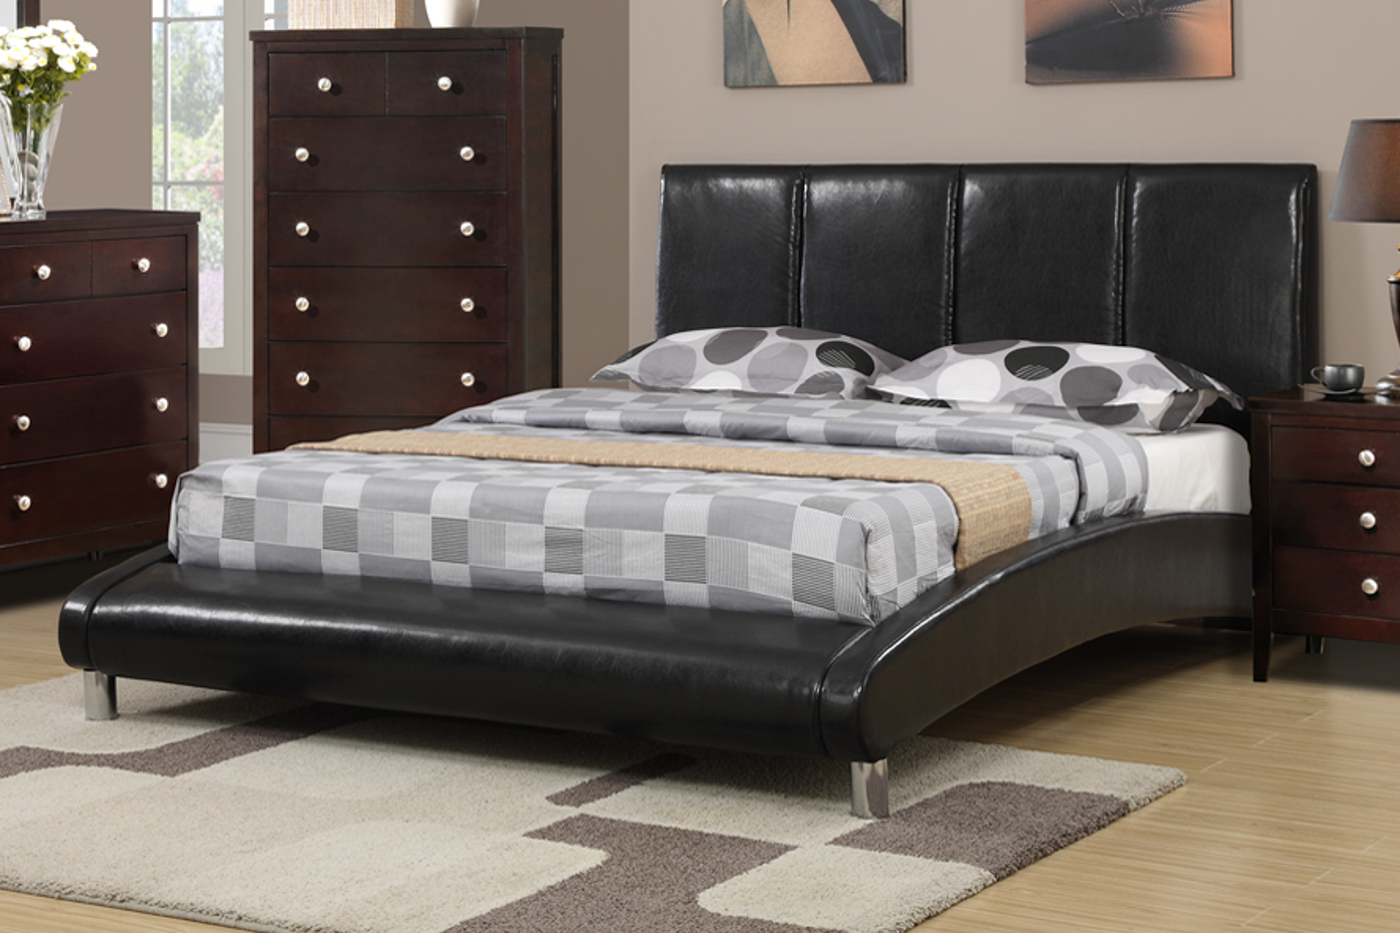 Black Metal Bed Steal A Sofa Furniture Outlet Los Angeles Ca